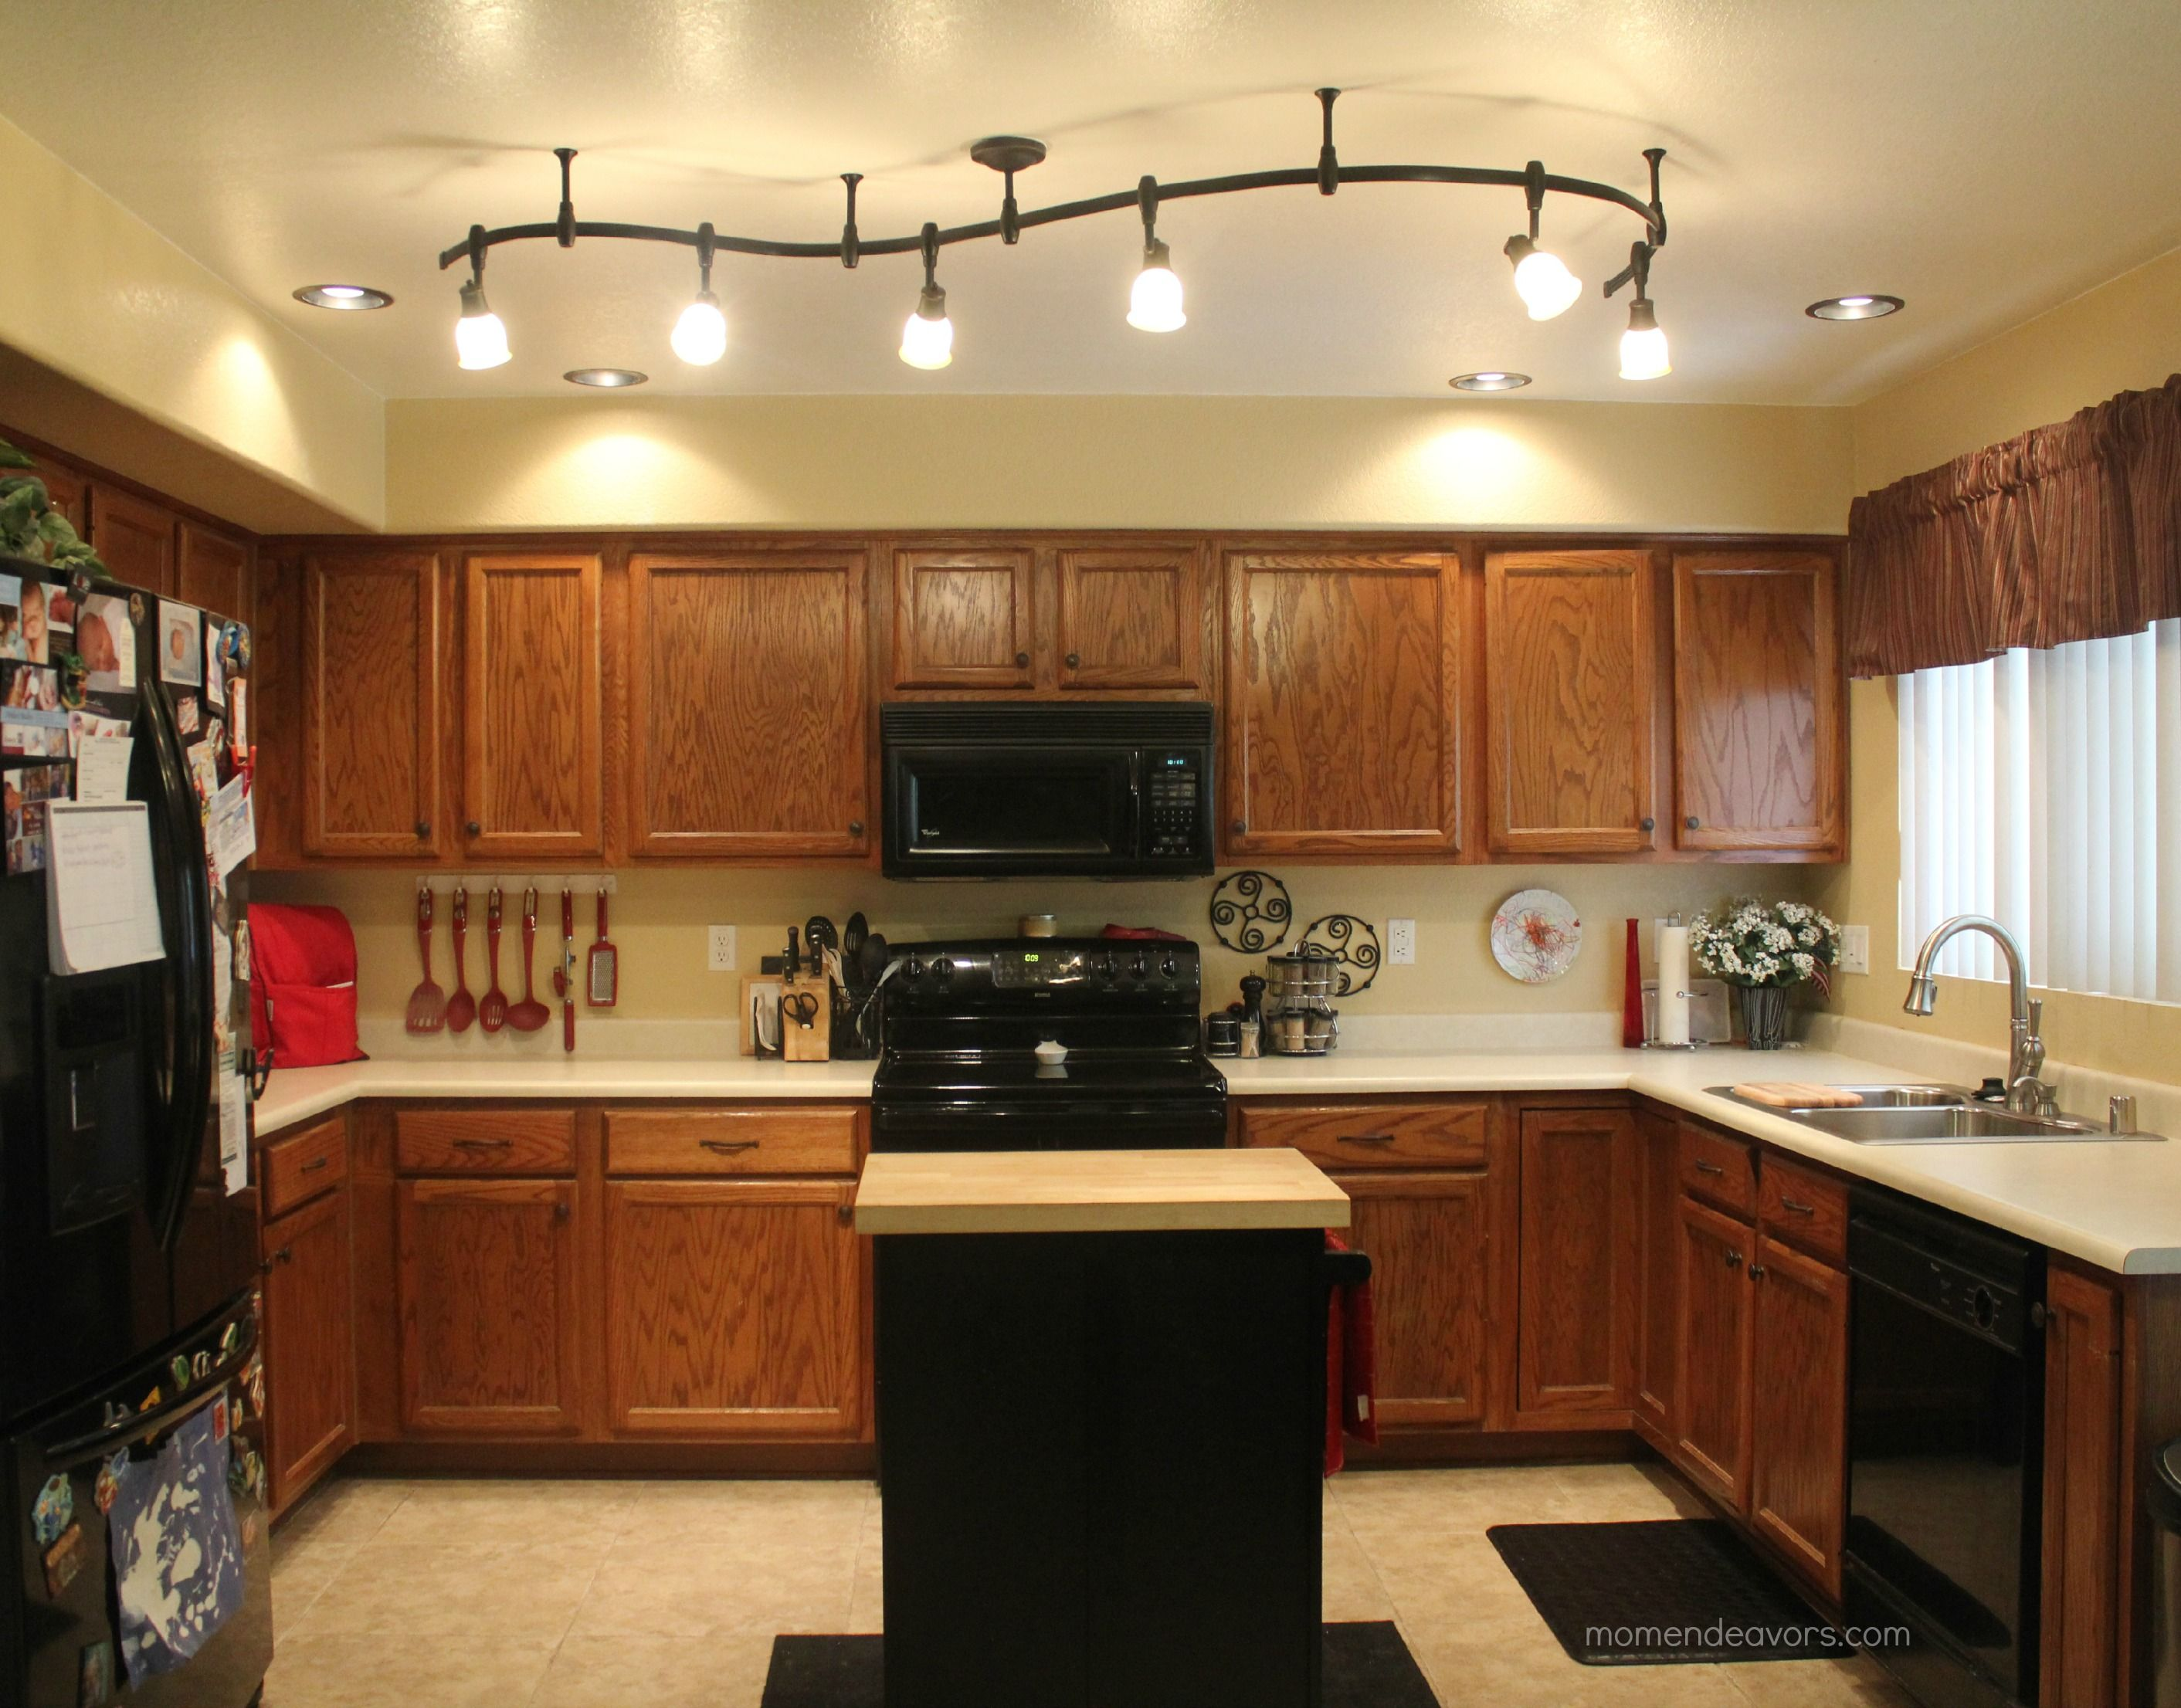 Kitchen Lighting 11 Stunning Photos Of Kitchen Track Lighting Home Decor